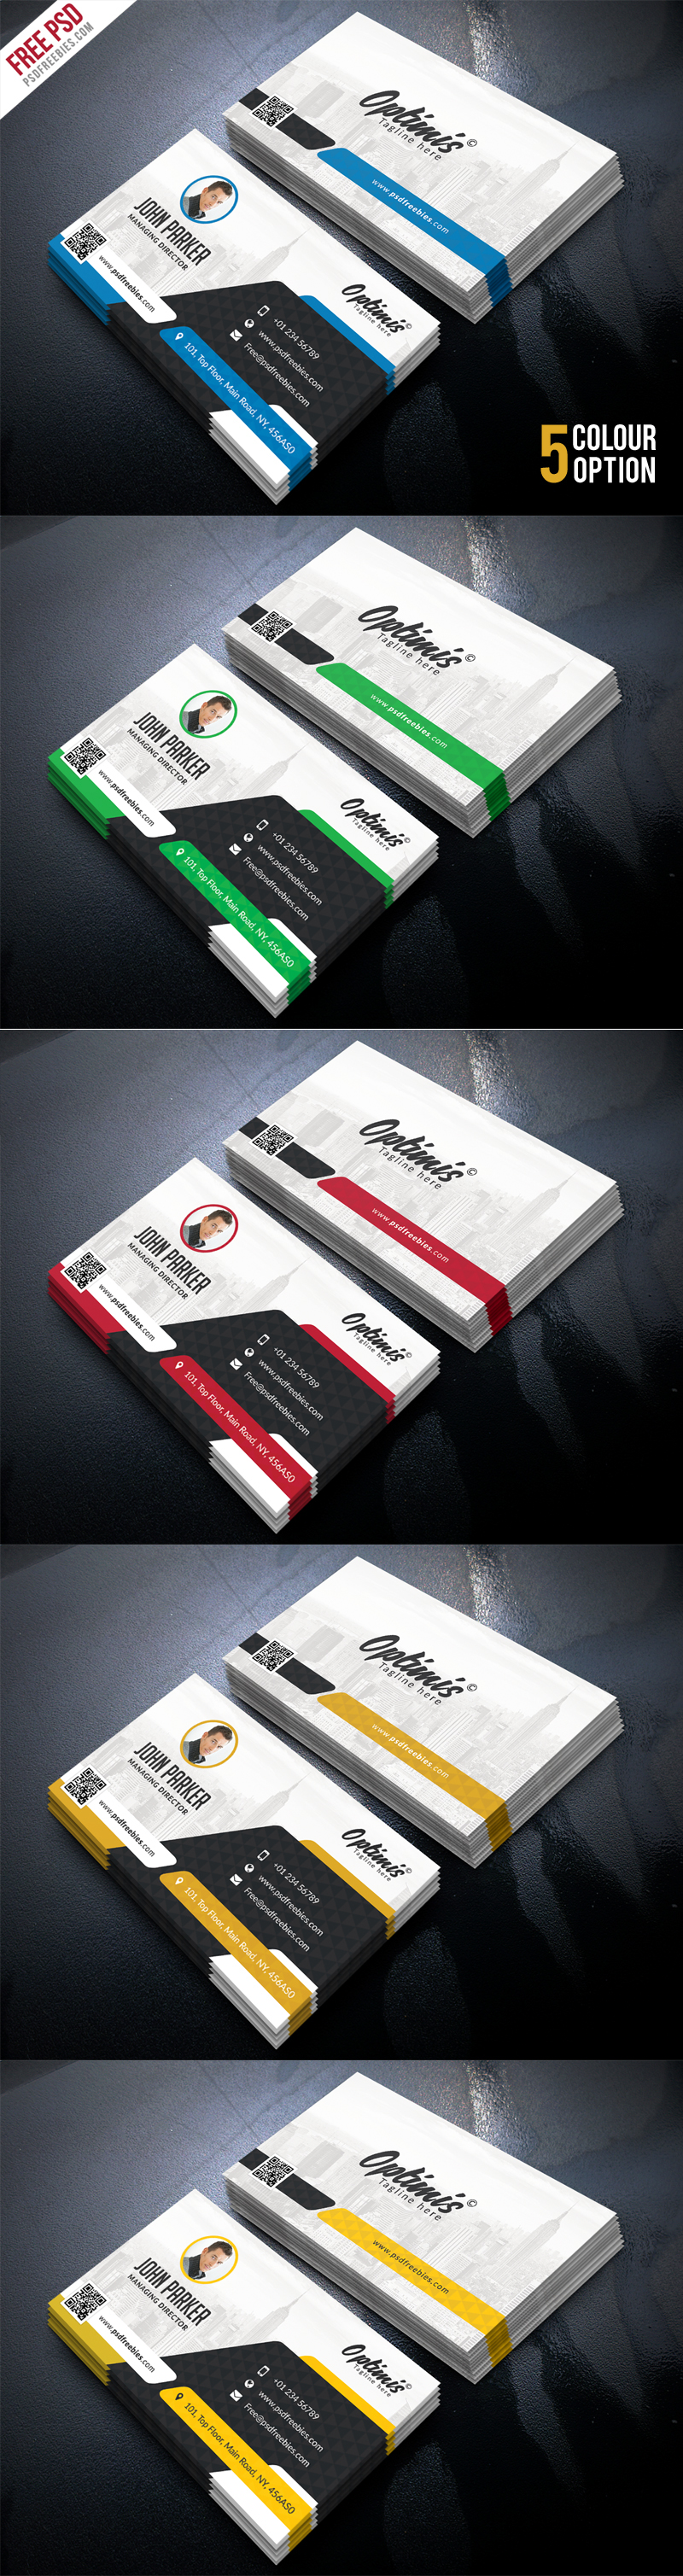 Creative business card free psd bundle on behance this creative business card psd bundle available for free download reheart Choice Image